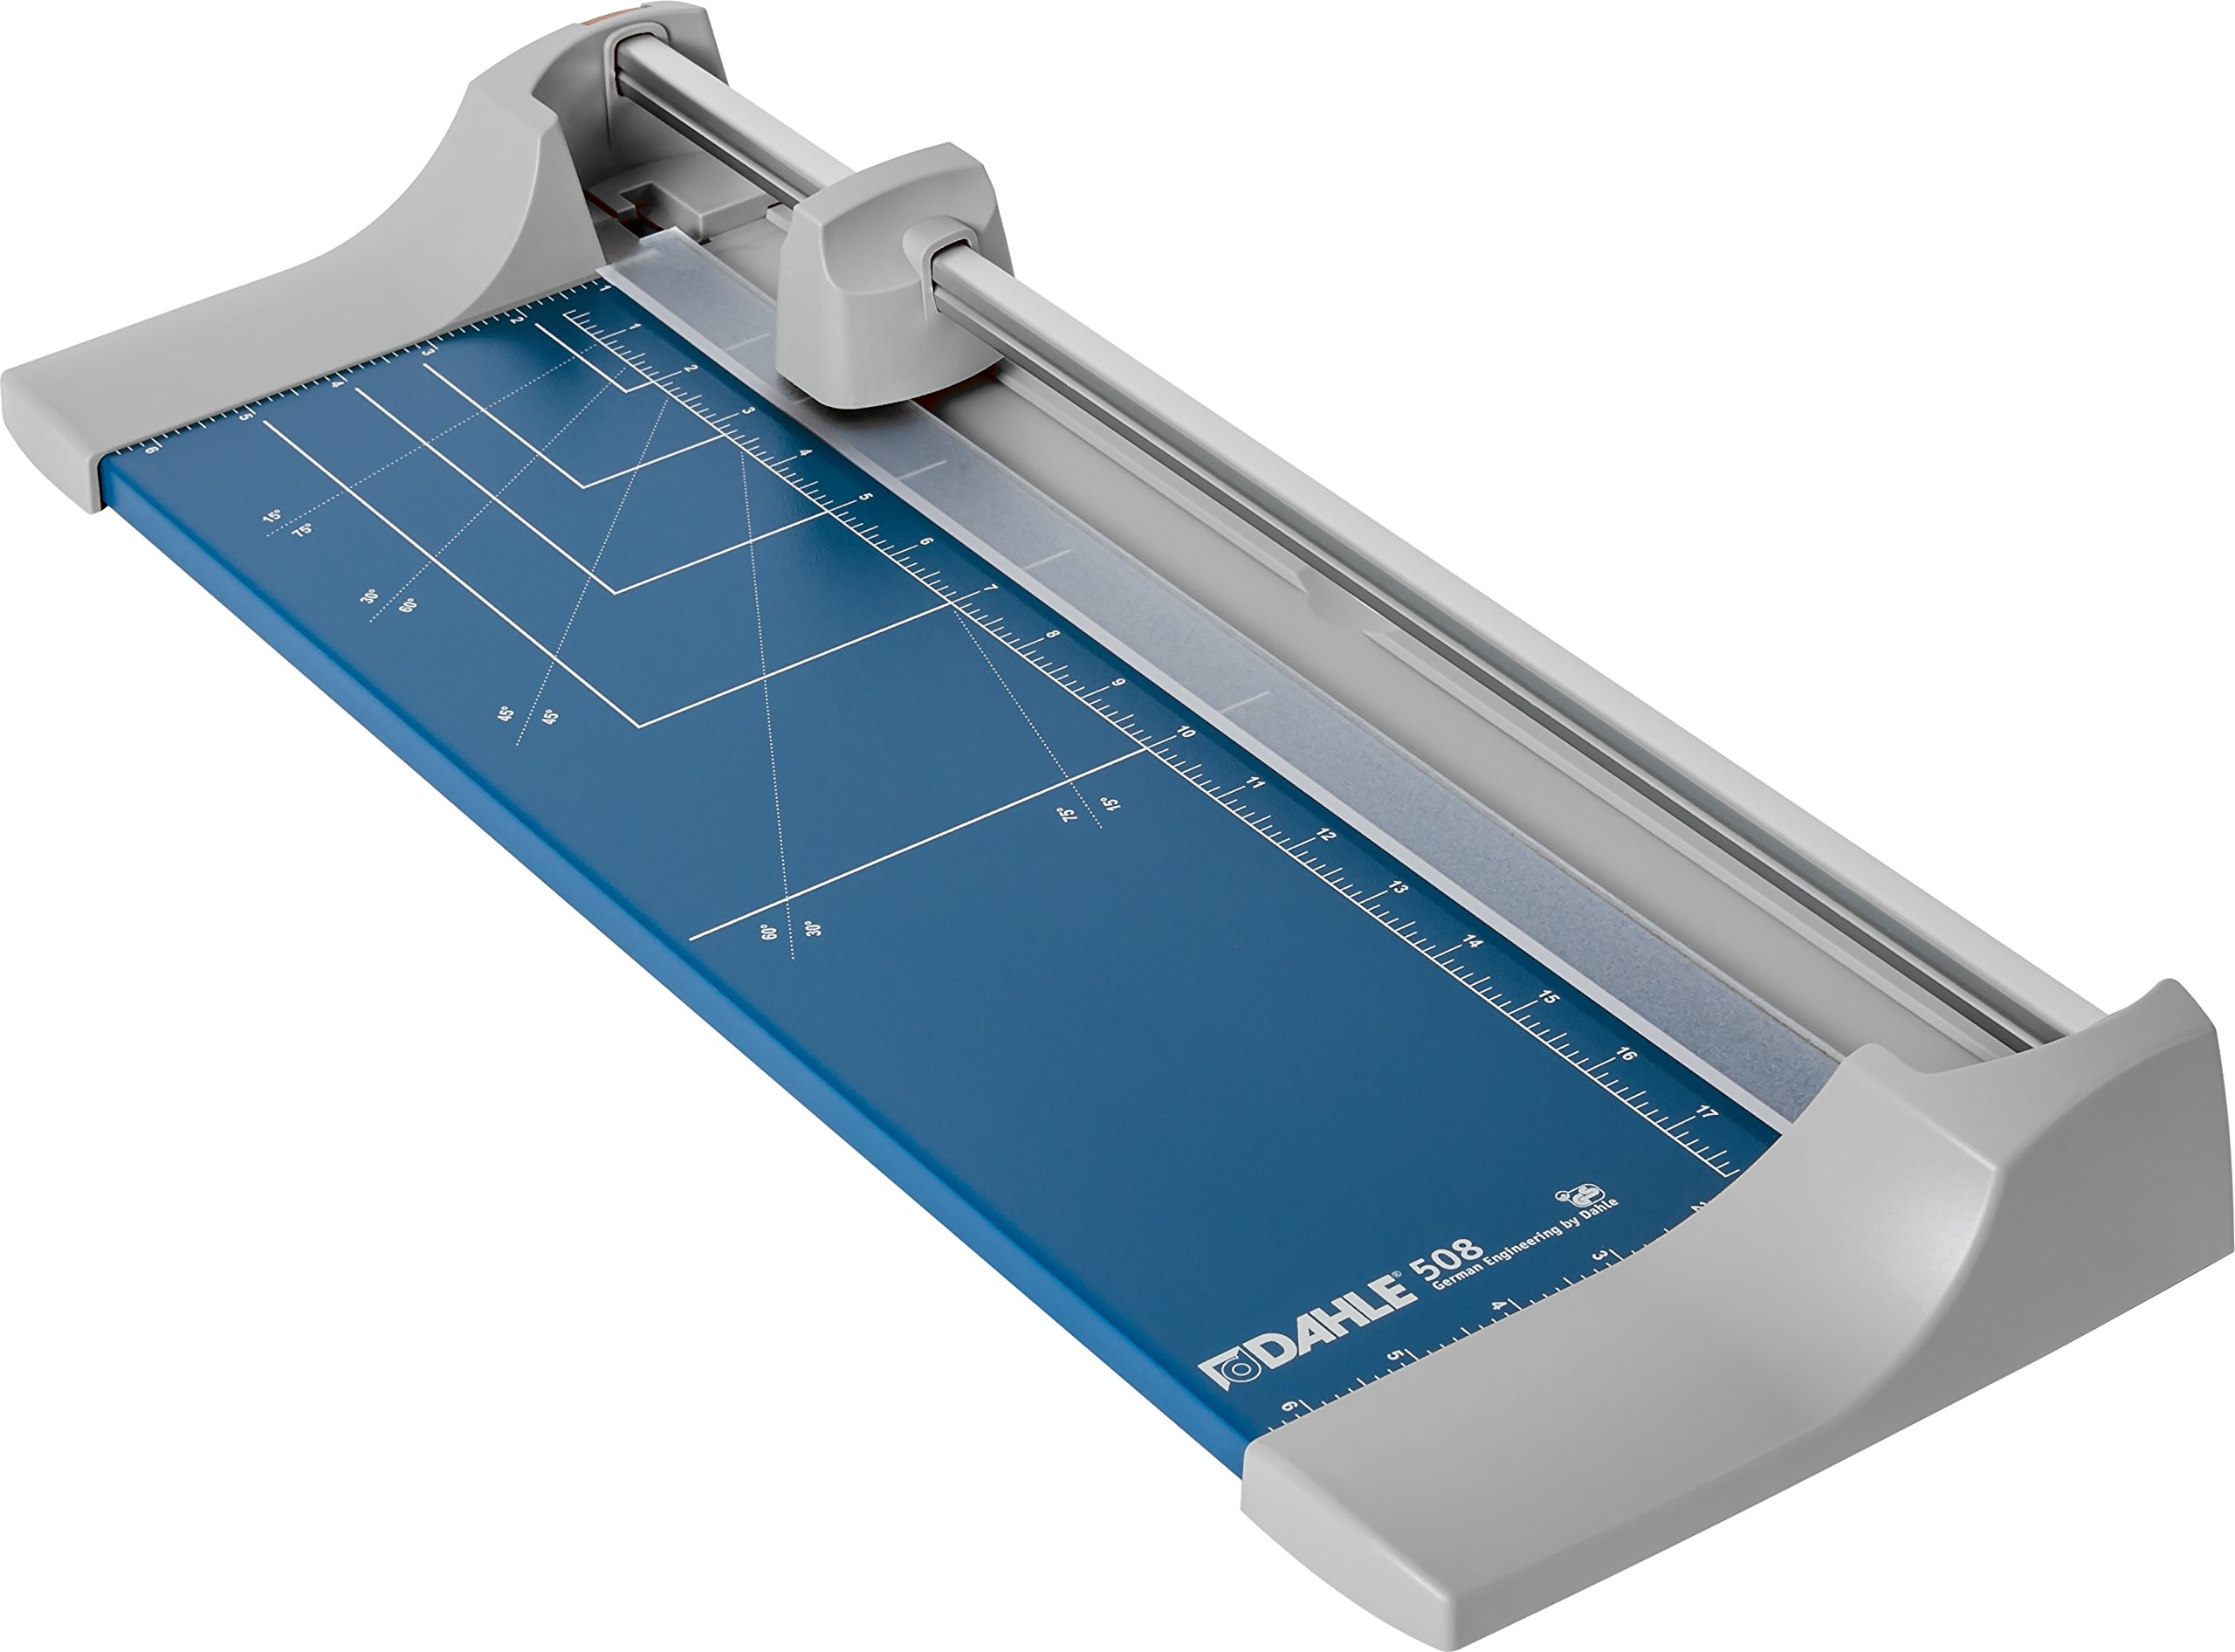 Dahle 508 Personal Rolling Trimmer, 18'' Cut Length, 7 Sheet Capacity, Self-Sharpening, Automatic Clamp, German Engineered Paper Cutter